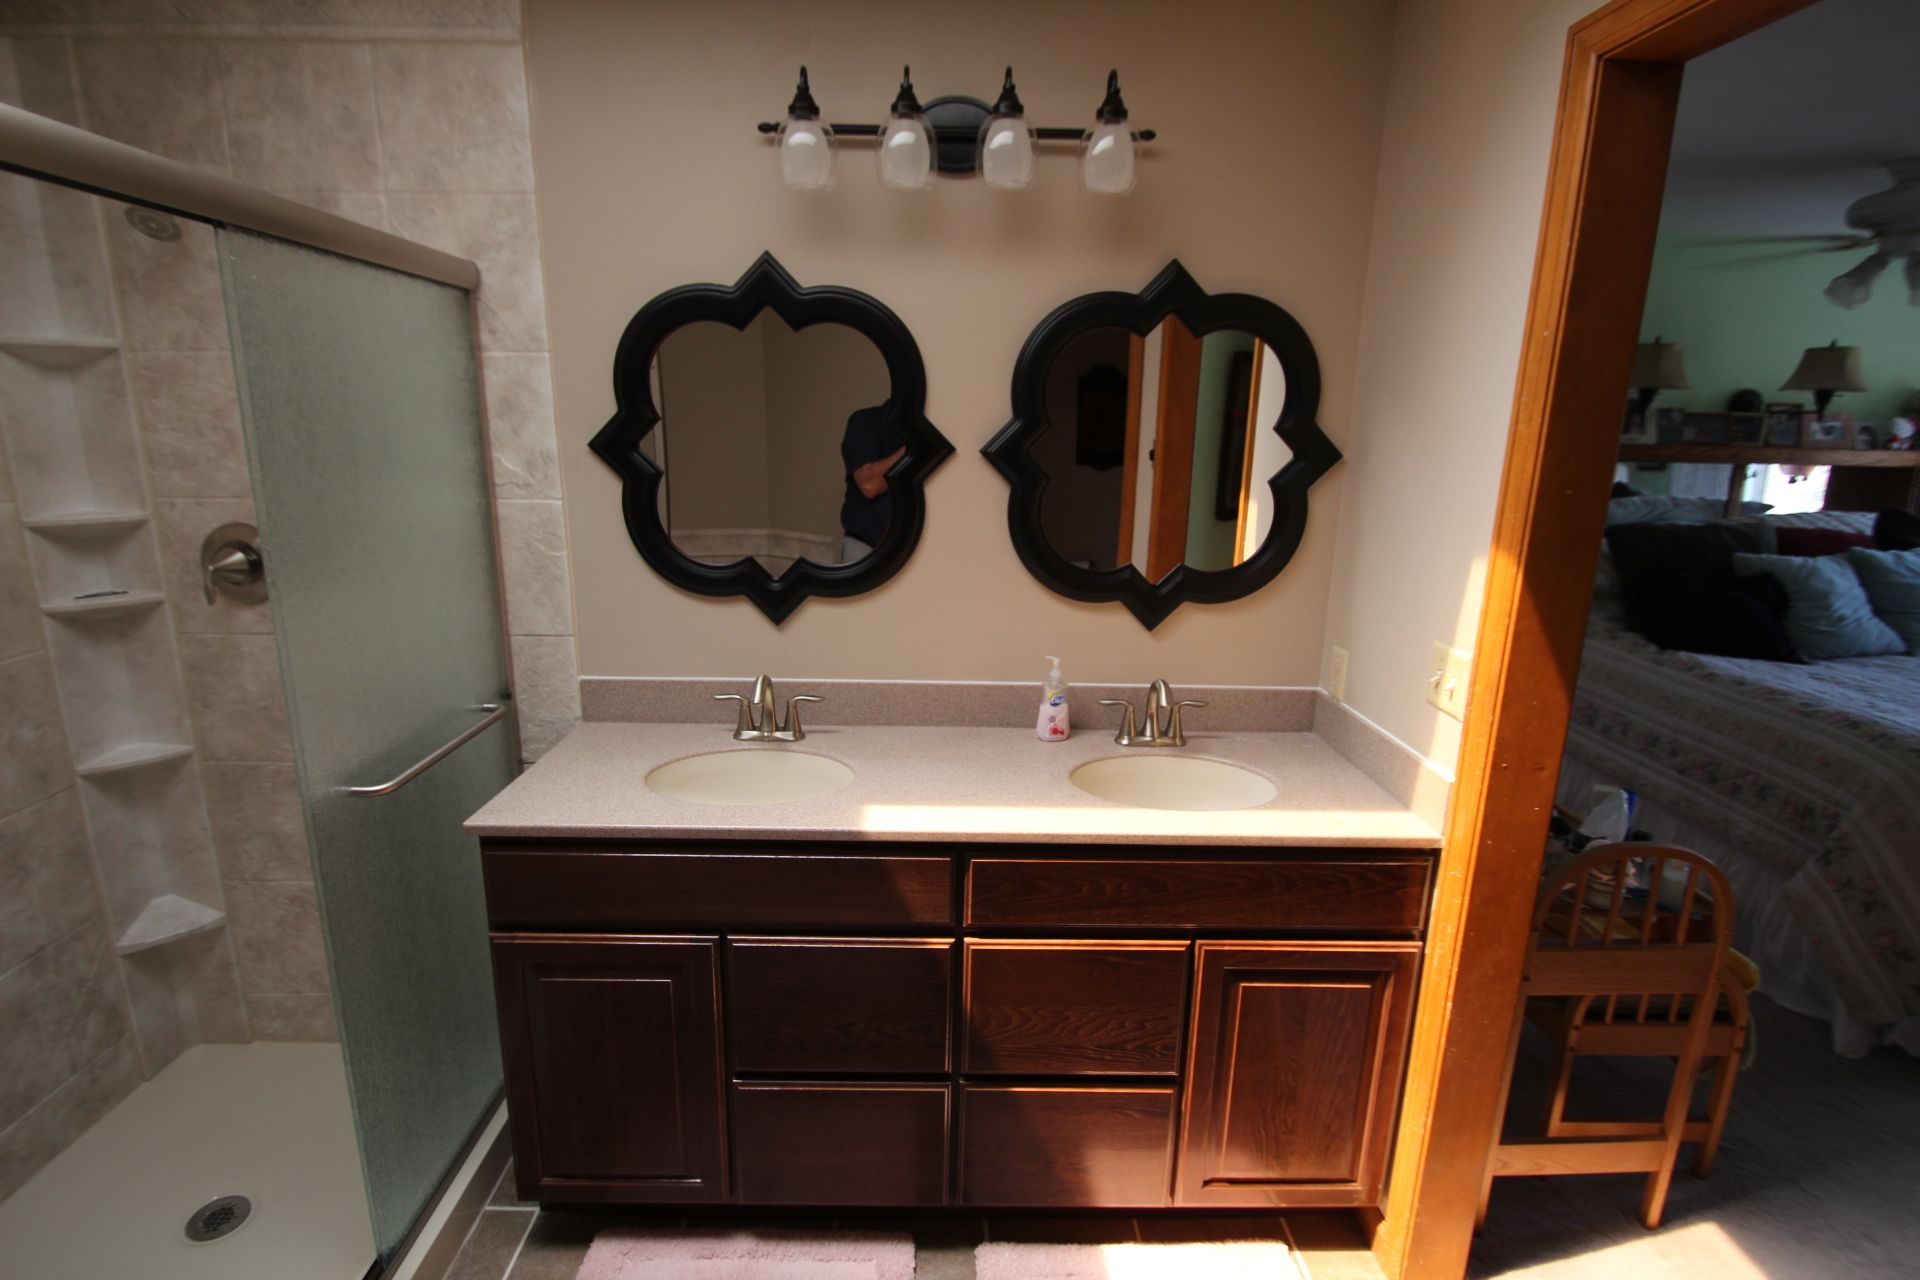 Installing Unique Looking Mirrors Can Add A Lot Of Character To Your Bathroom Bathroom Helpful Hints Lighting